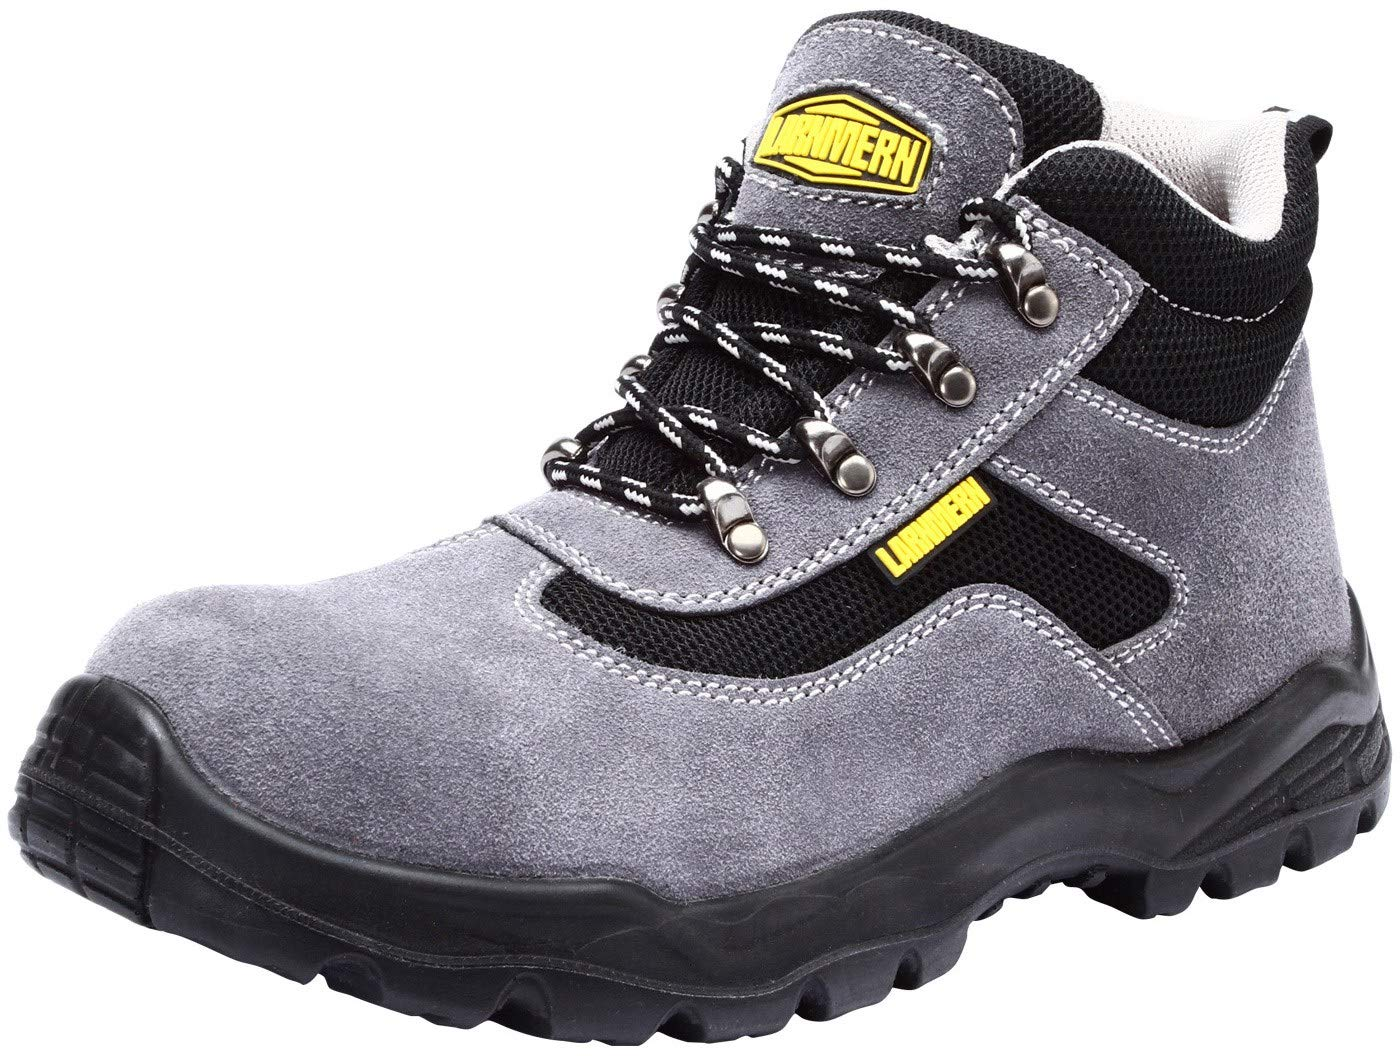 LARNMERN Mens Steel Toe Safety Shoes, LM-8080 Insulated Work Boots Reflective Slip Resistant (9, Grey)